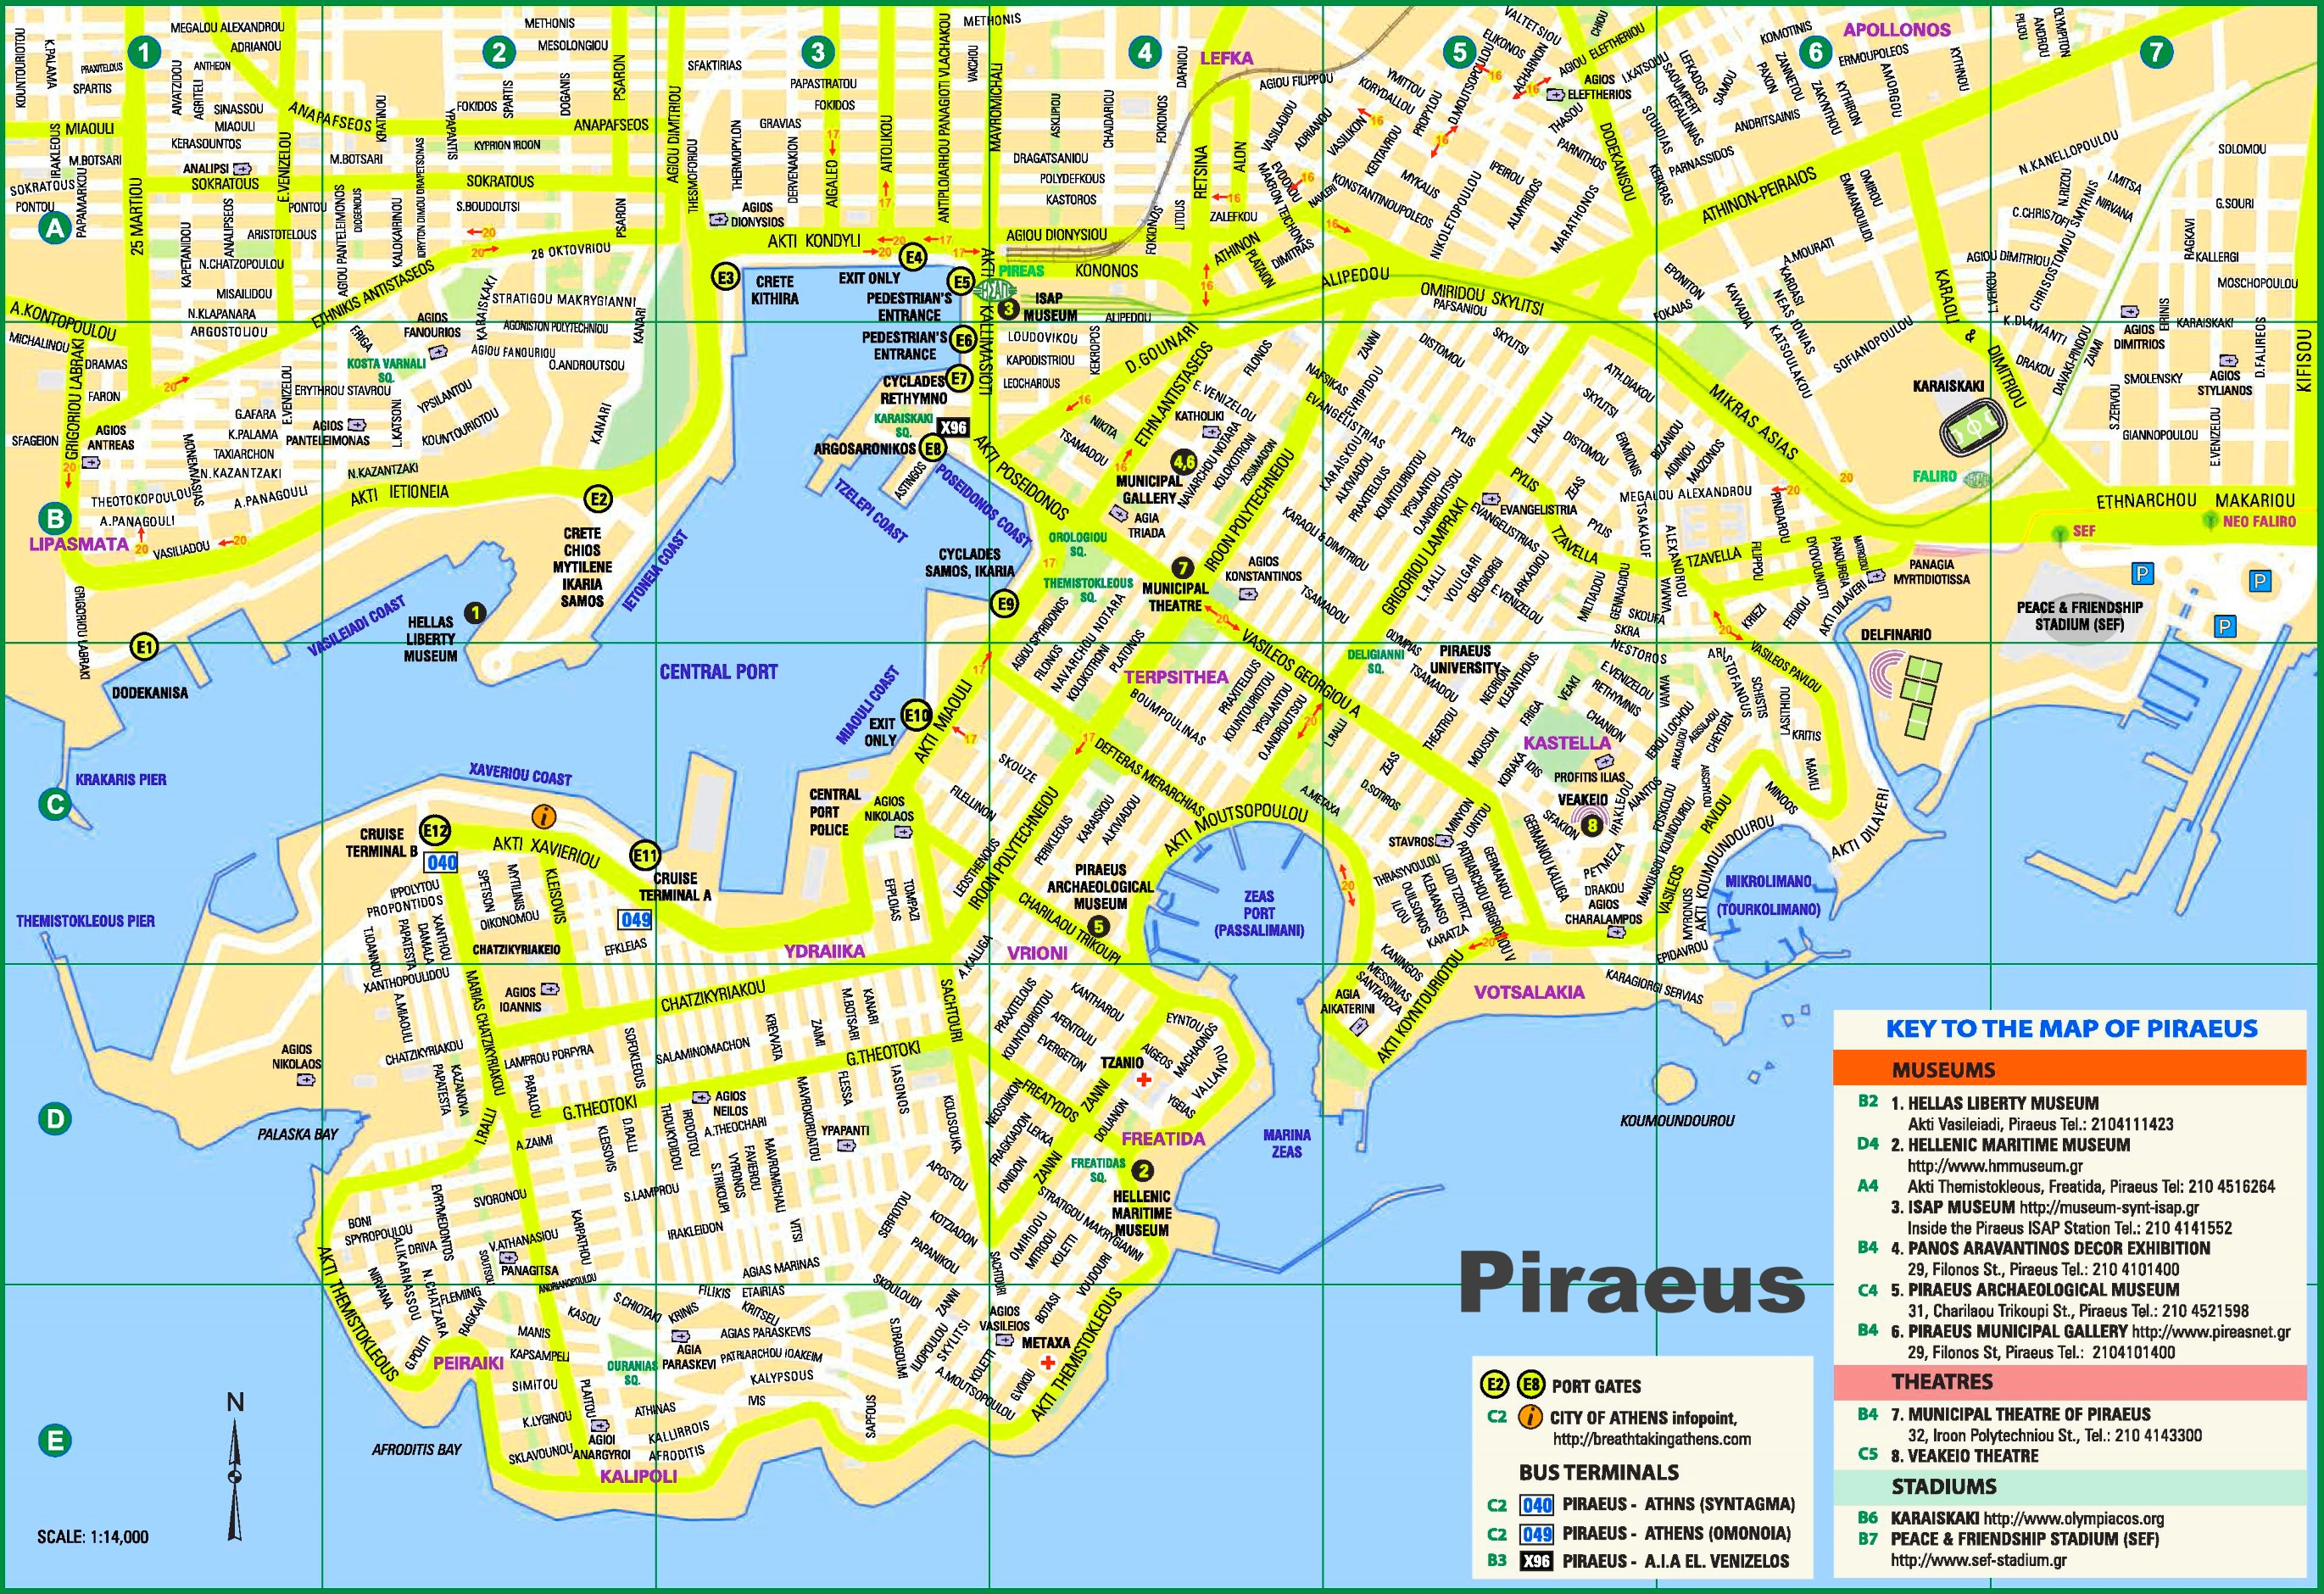 Piraeus tourist map